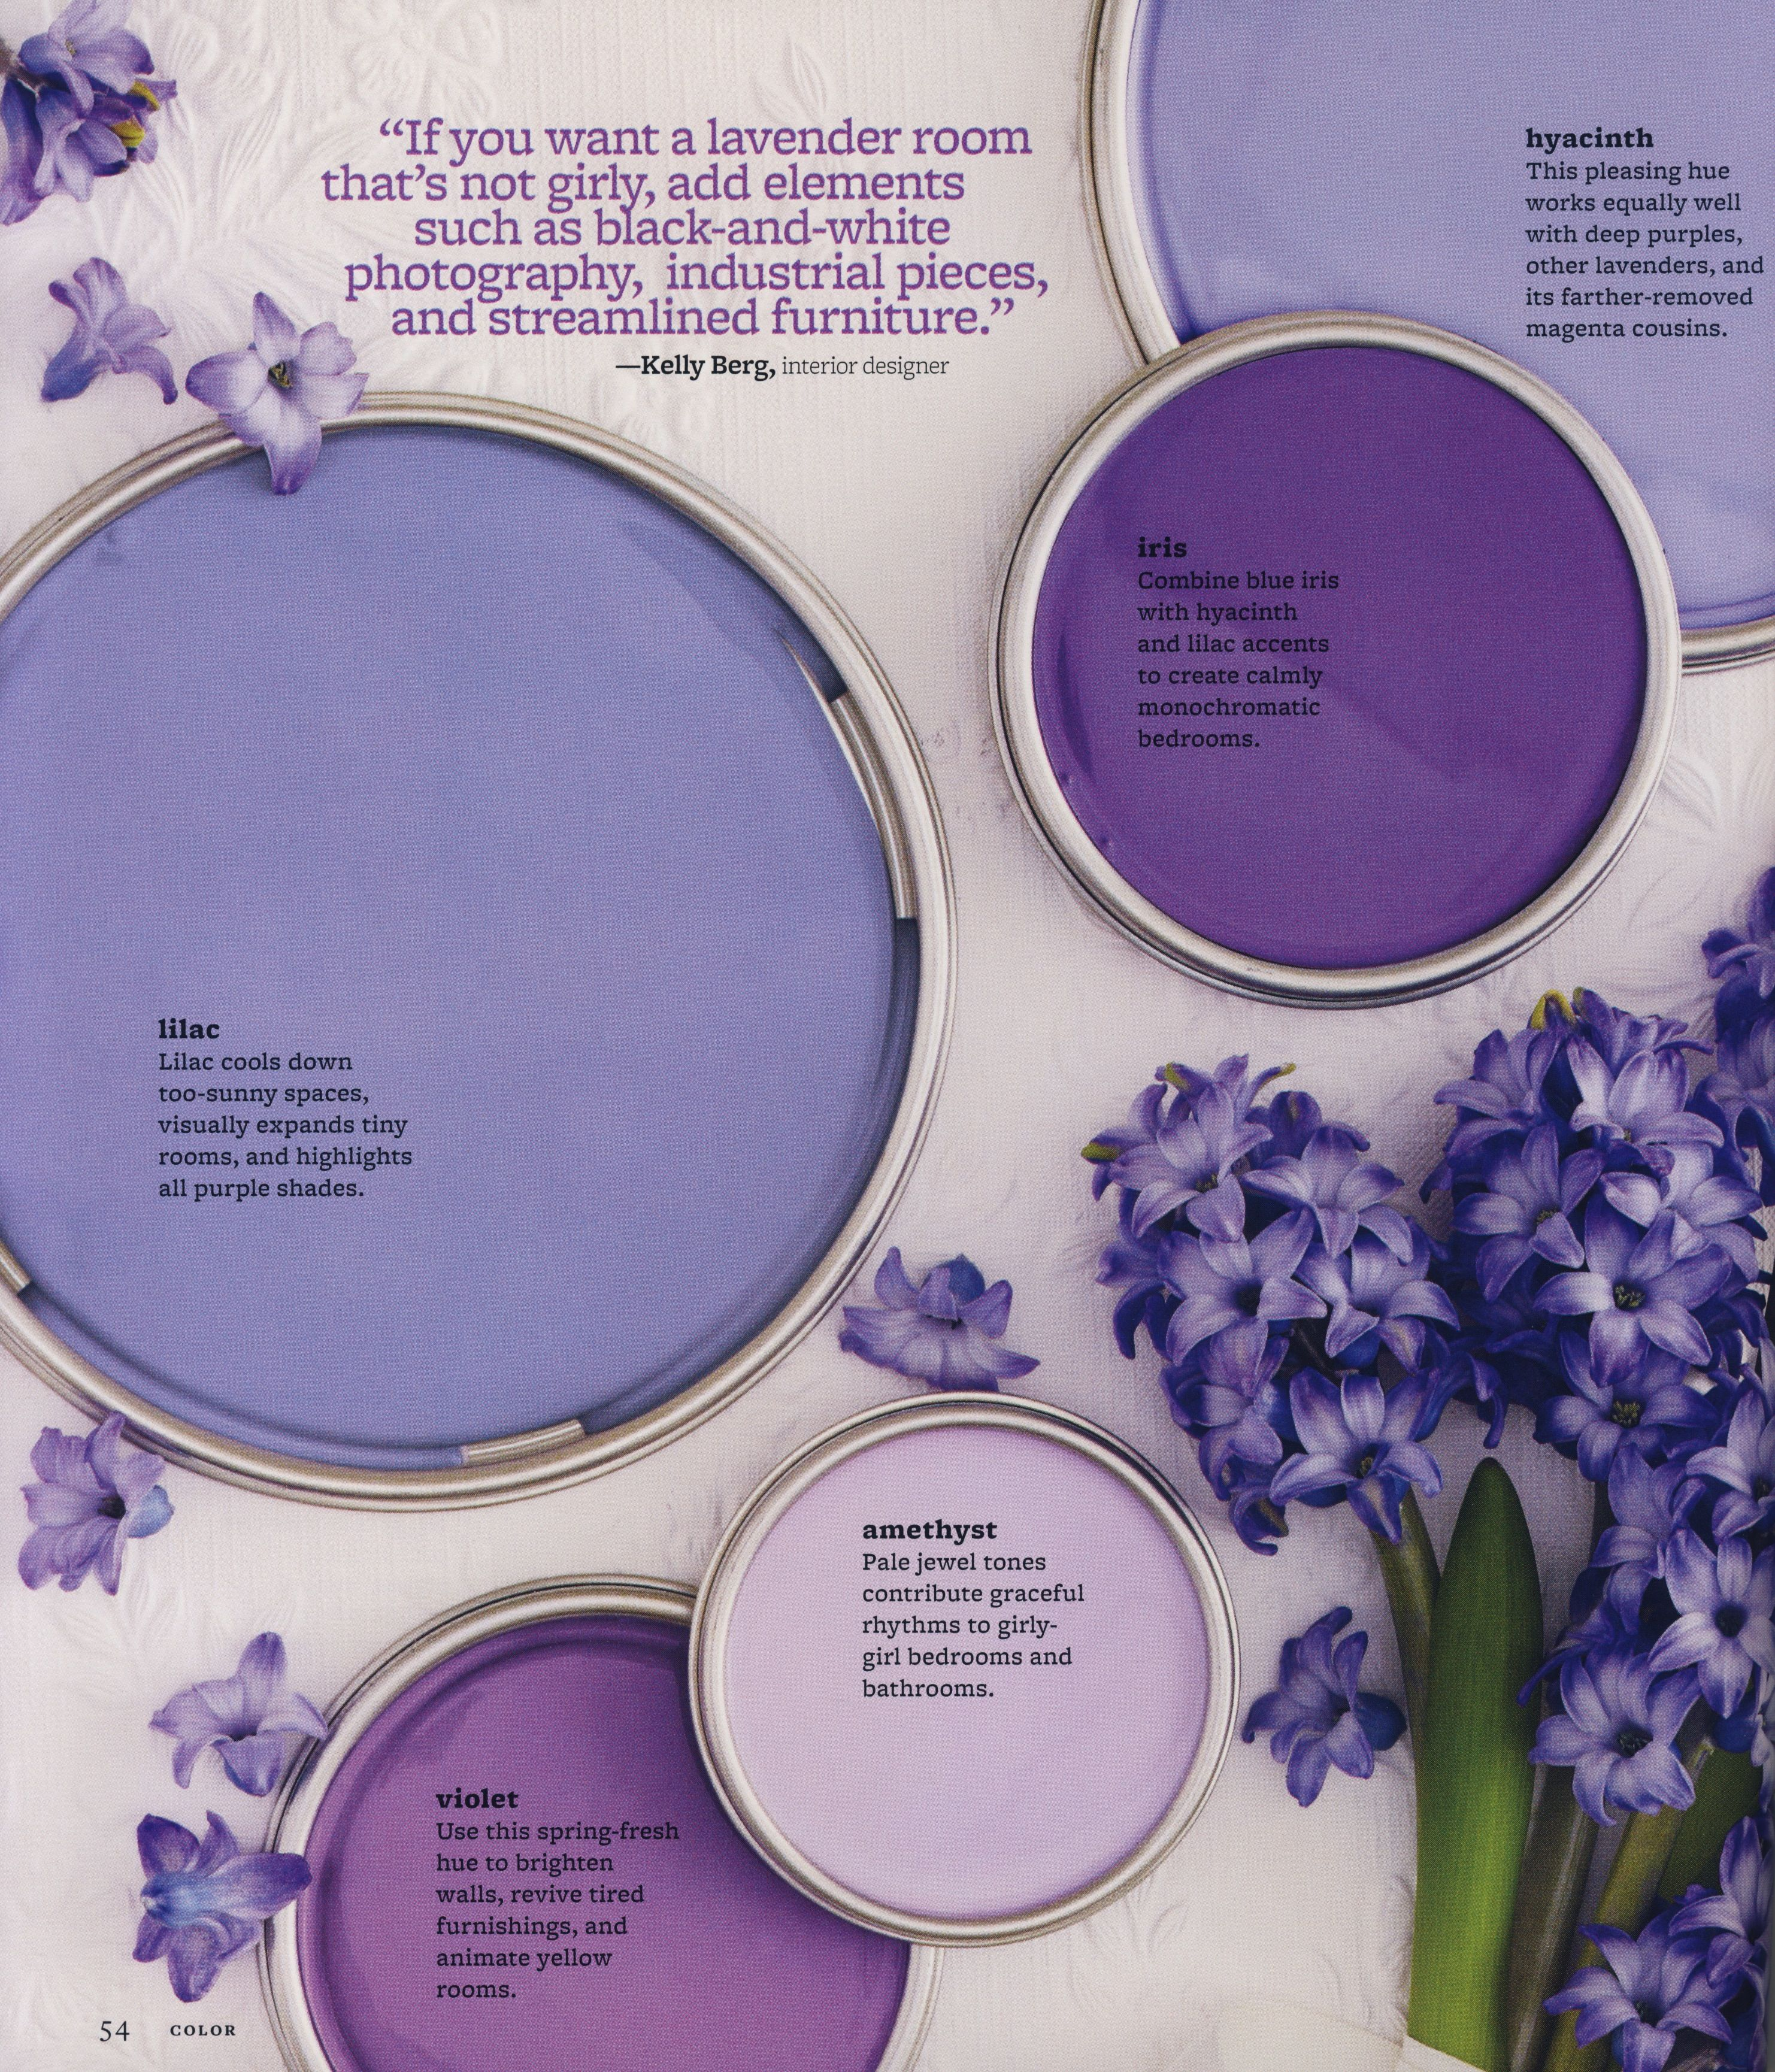 Color The Complete Guide For Your Home If You Want A Lavender Room That S Not Y Add Elements Such As Black And White Photography Pieces